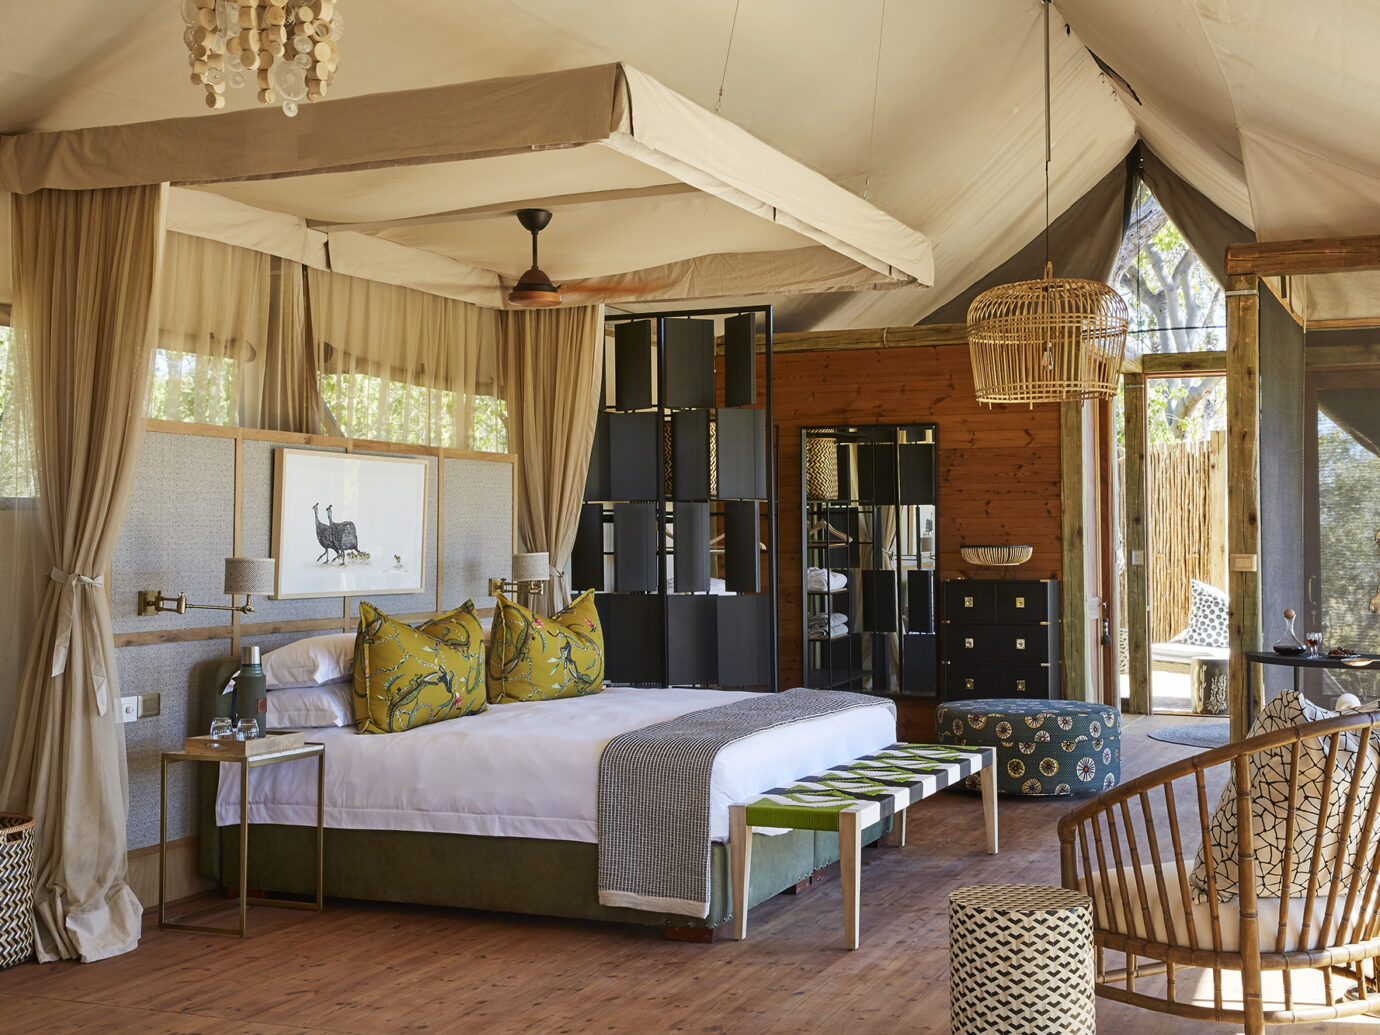 Bedroom at Tuludi Camp, Botswana